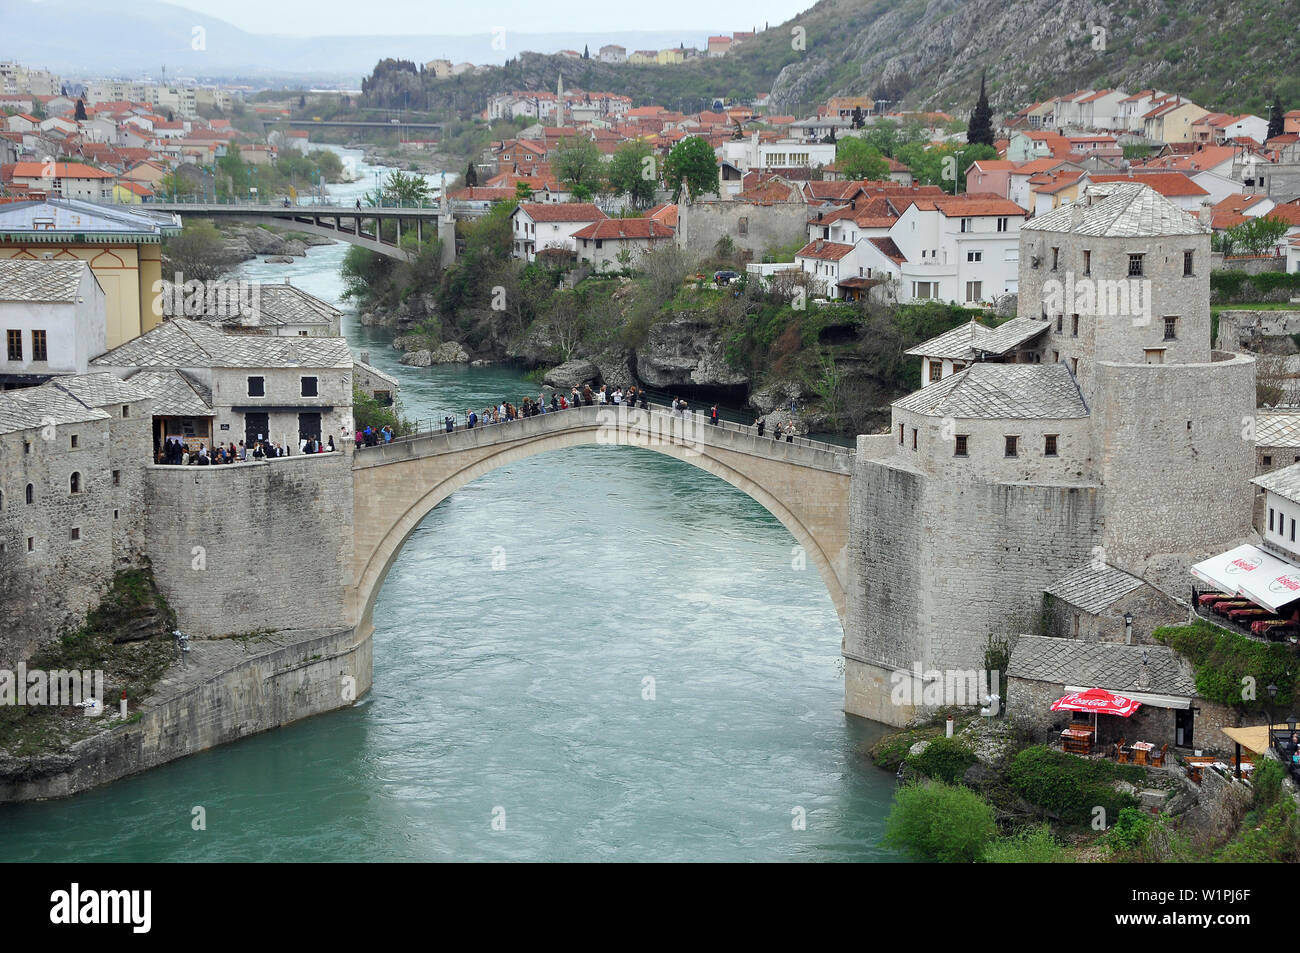 The Old Bridge In The Heart Of The Old City Mostar Bosnia And